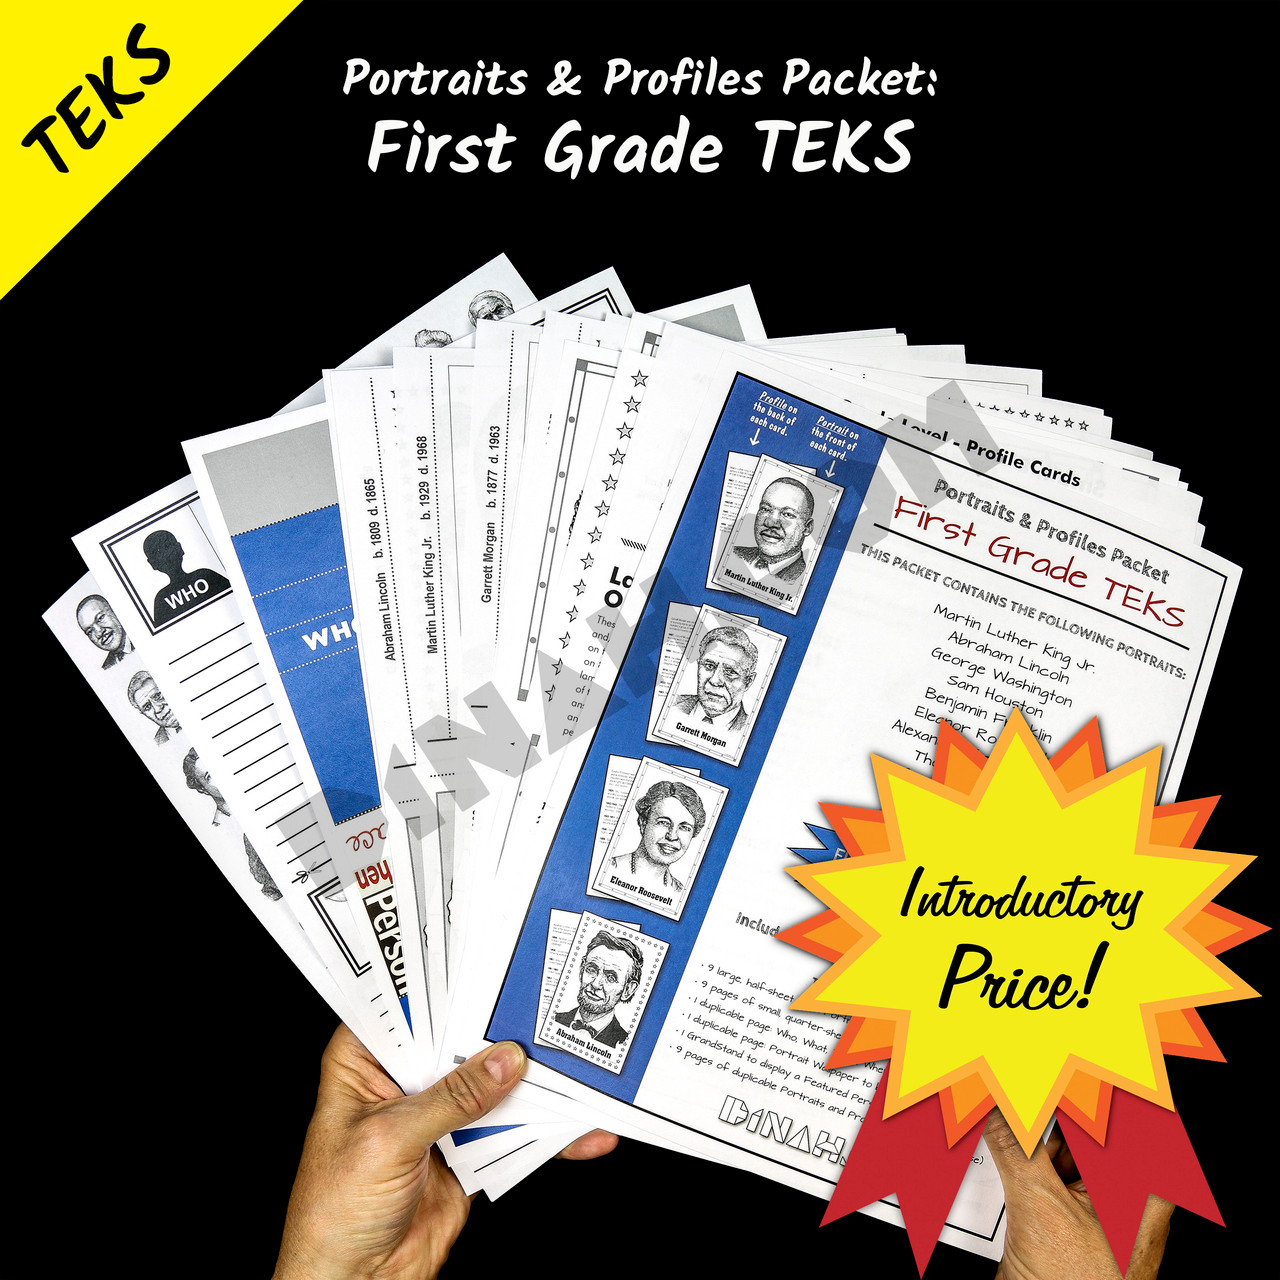 Portraits and Profiles Packet: First Grade TEKS